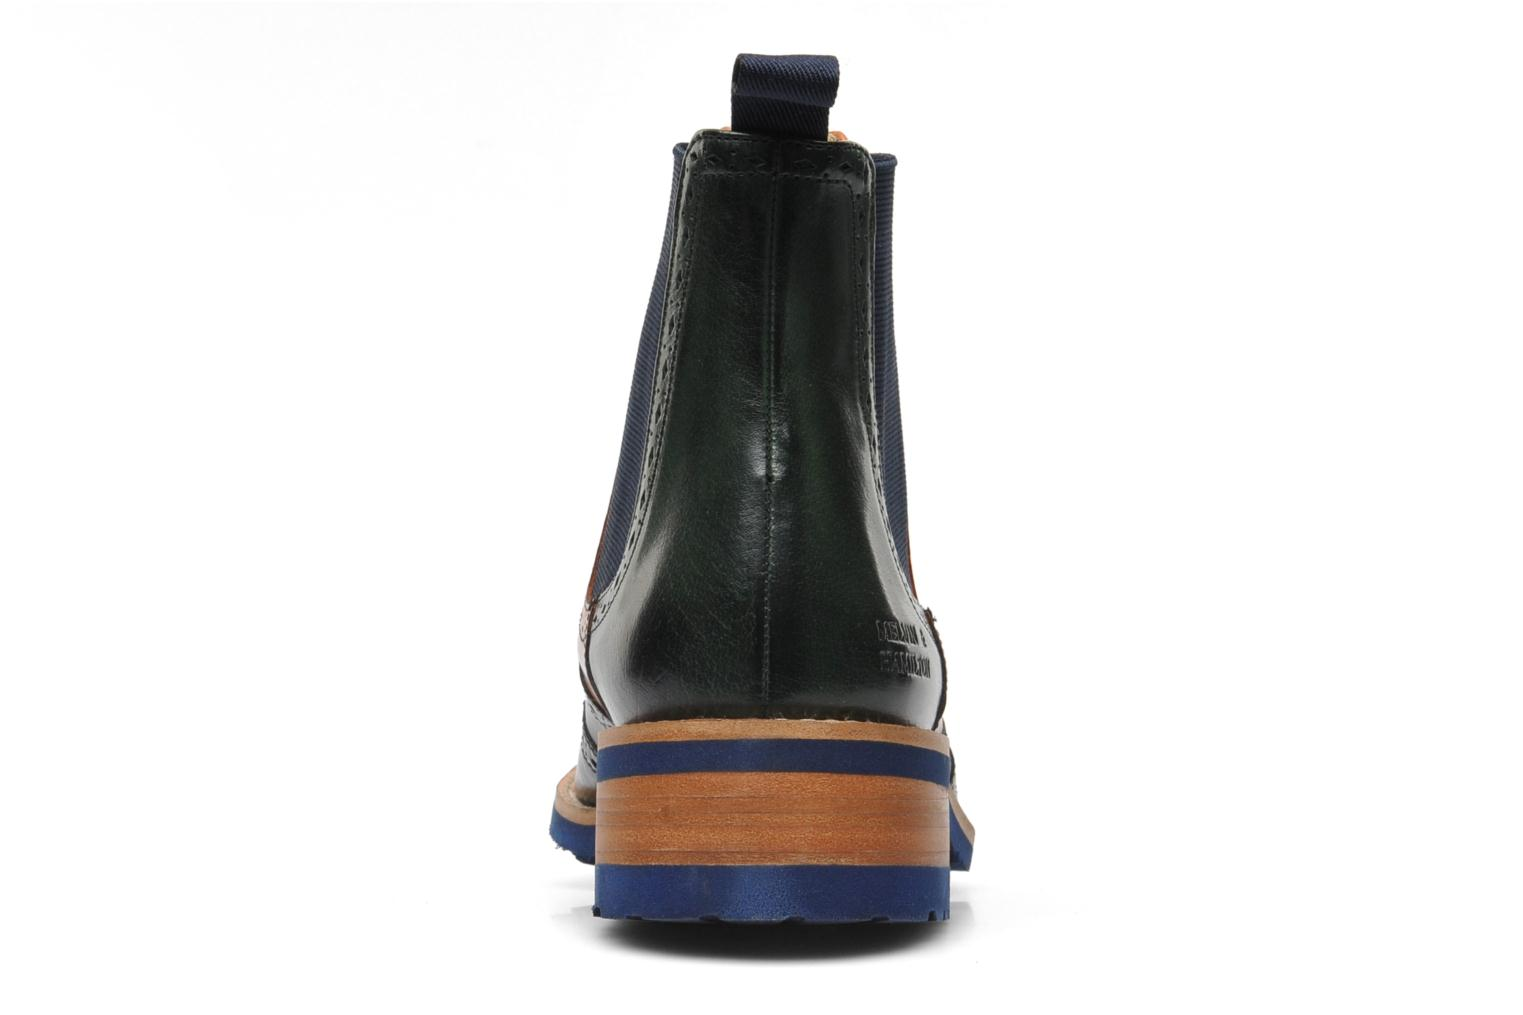 Walter 9 Classic Navy/Stone/Forest/Elast Navy/WL Blue